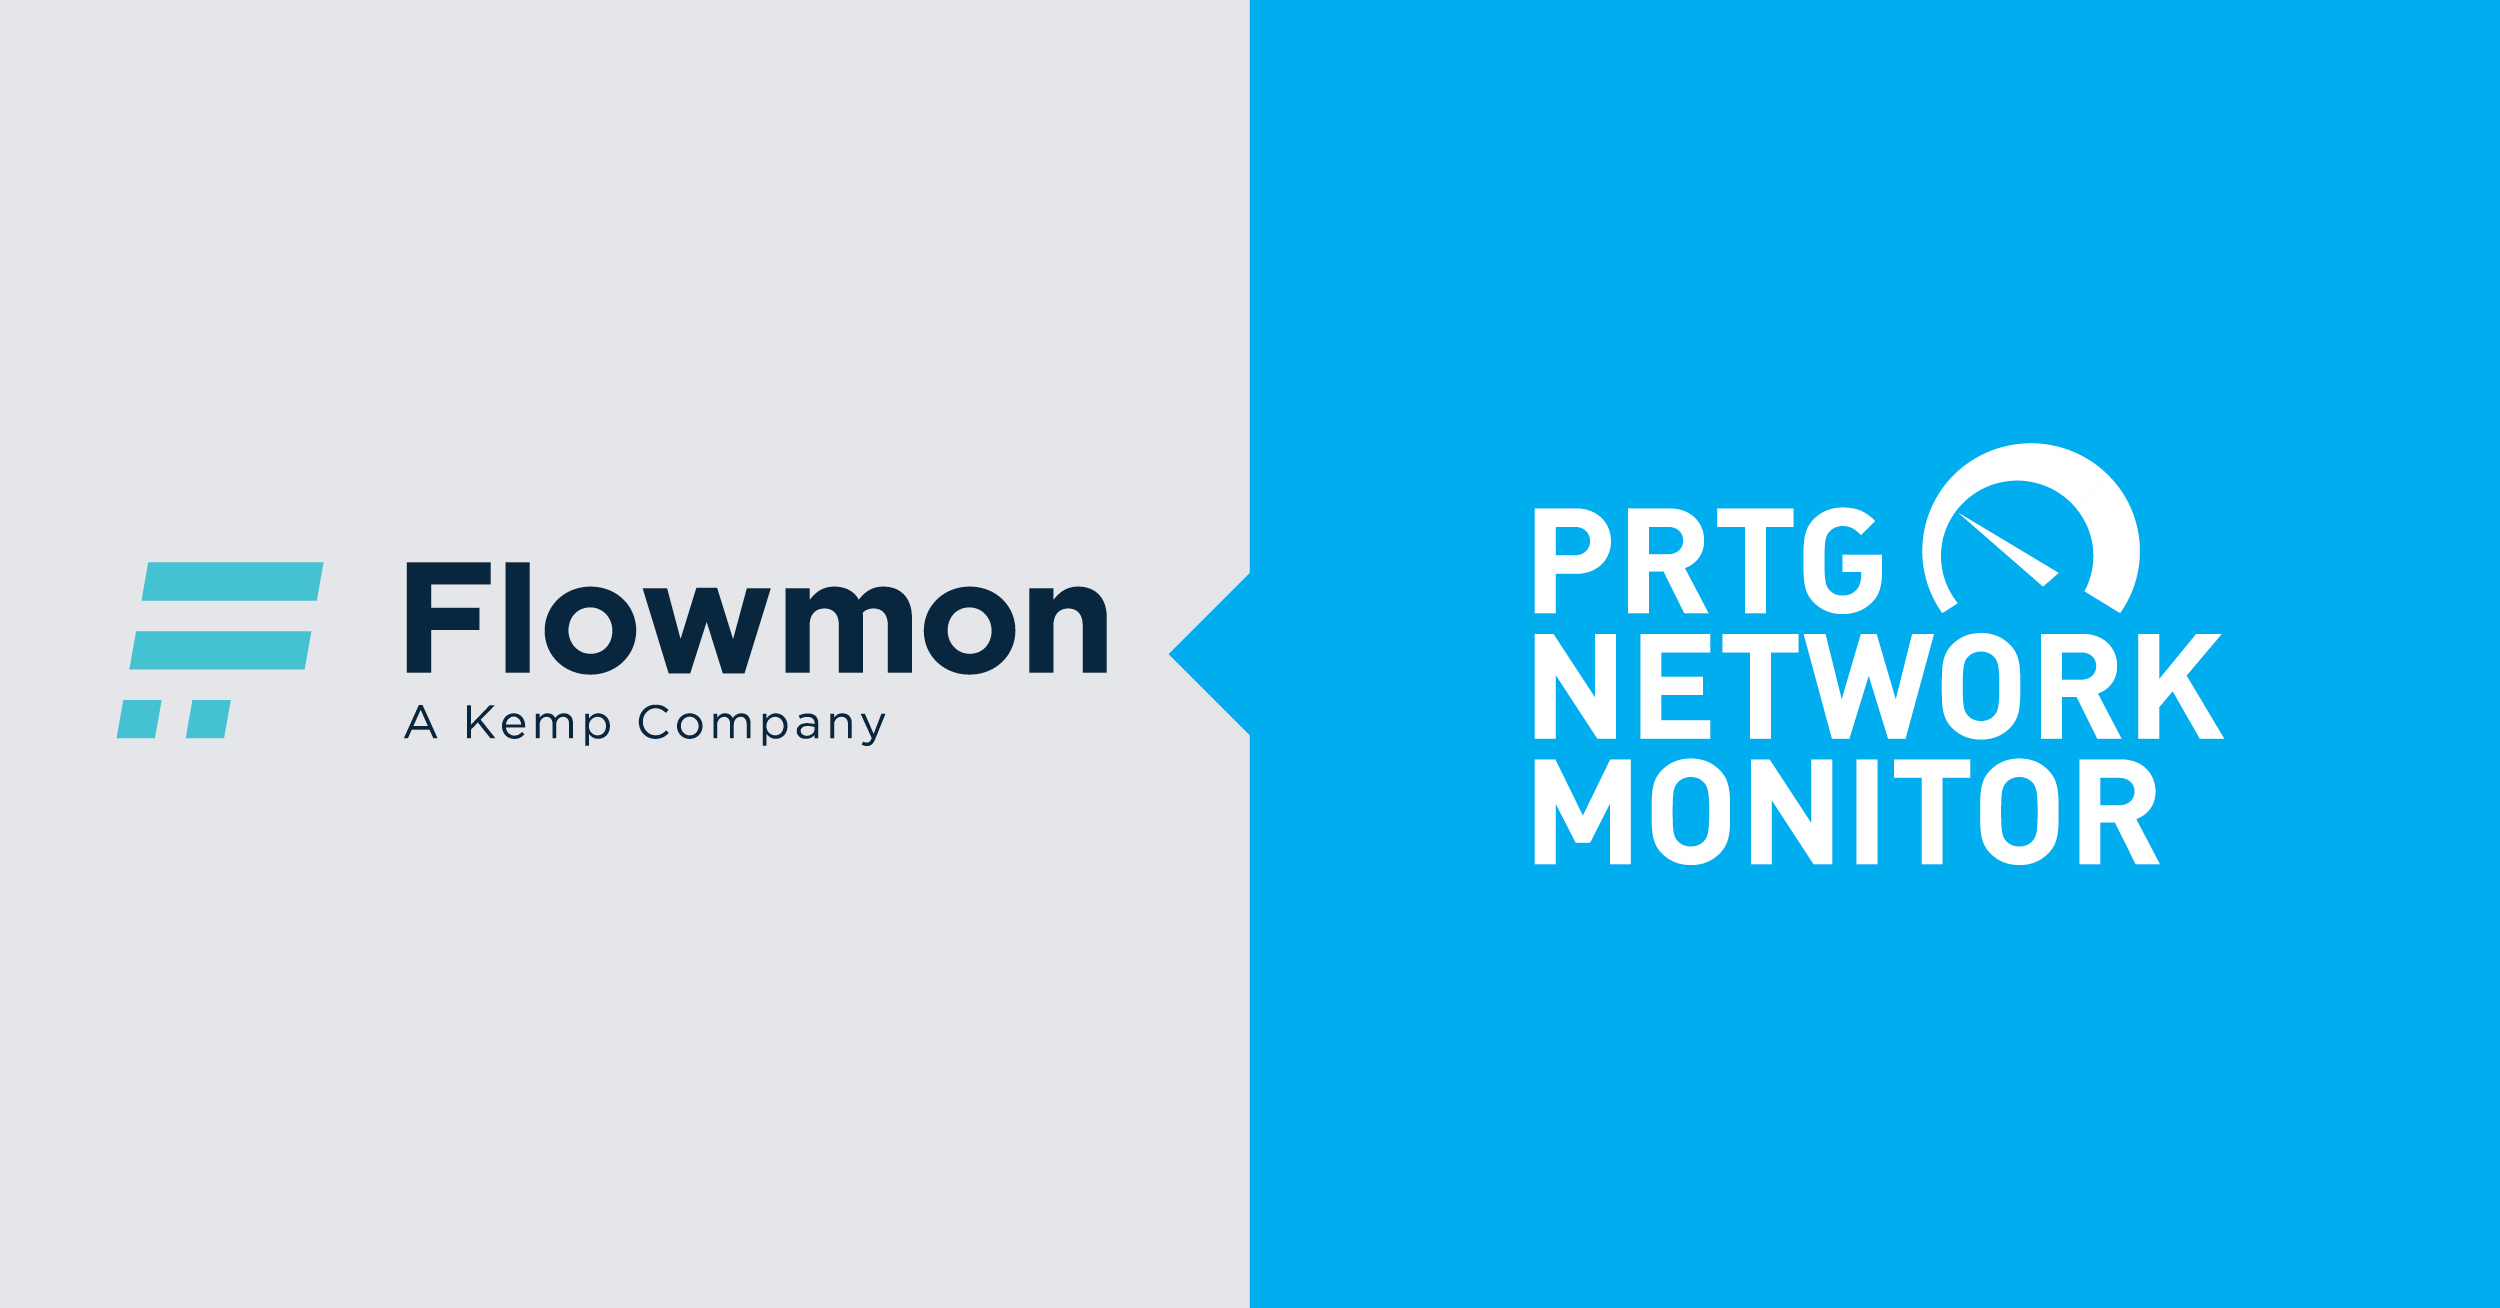 perfect monitoring combine prtgs breadth with flowmons depth